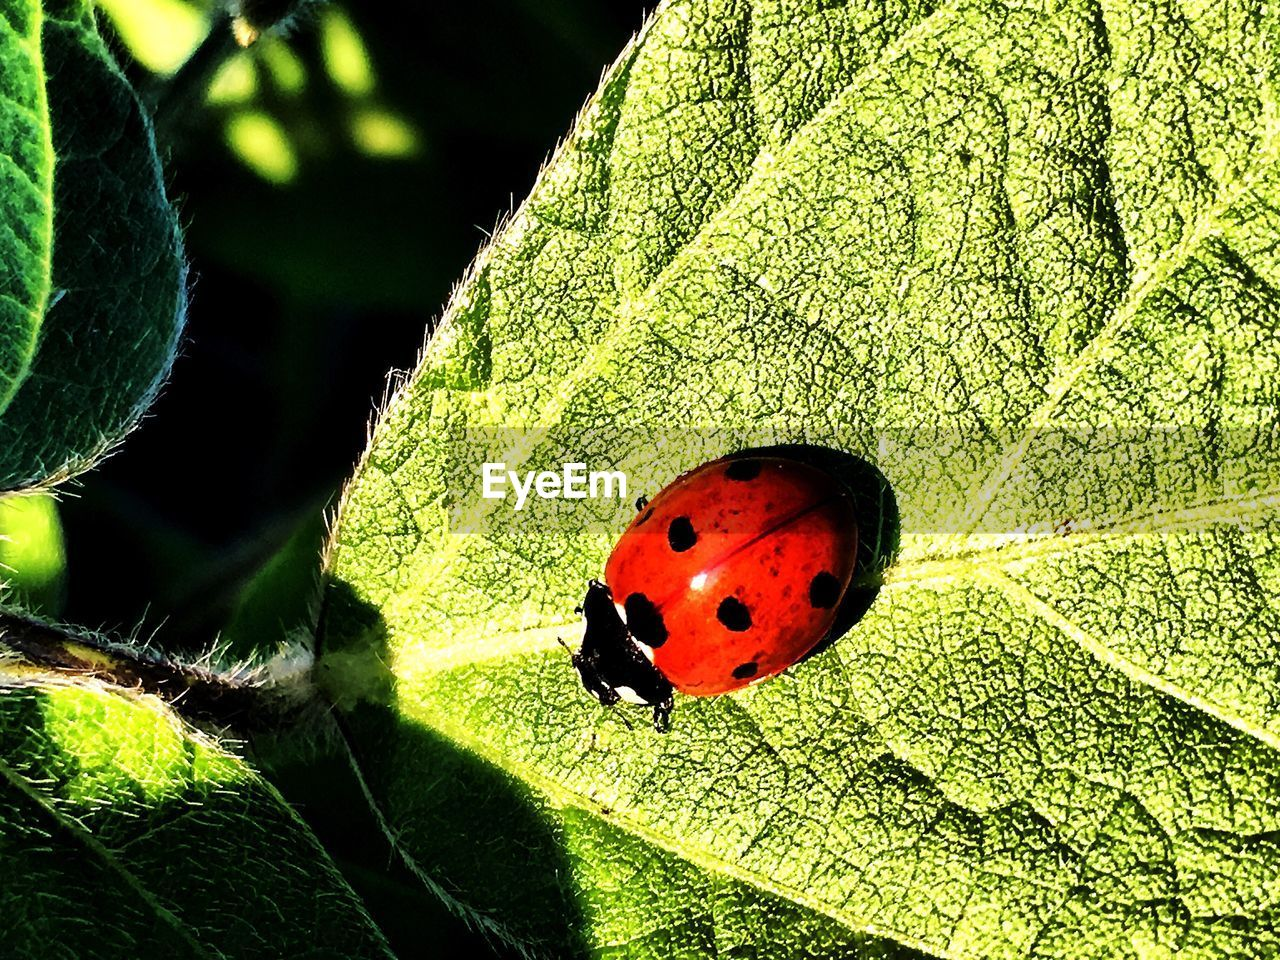 insect, animal themes, animals in the wild, one animal, leaf, wildlife, red, close-up, sunlight, no people, outdoors, day, ladybug, green color, nature, fragility, animal markings, plant, beauty in nature